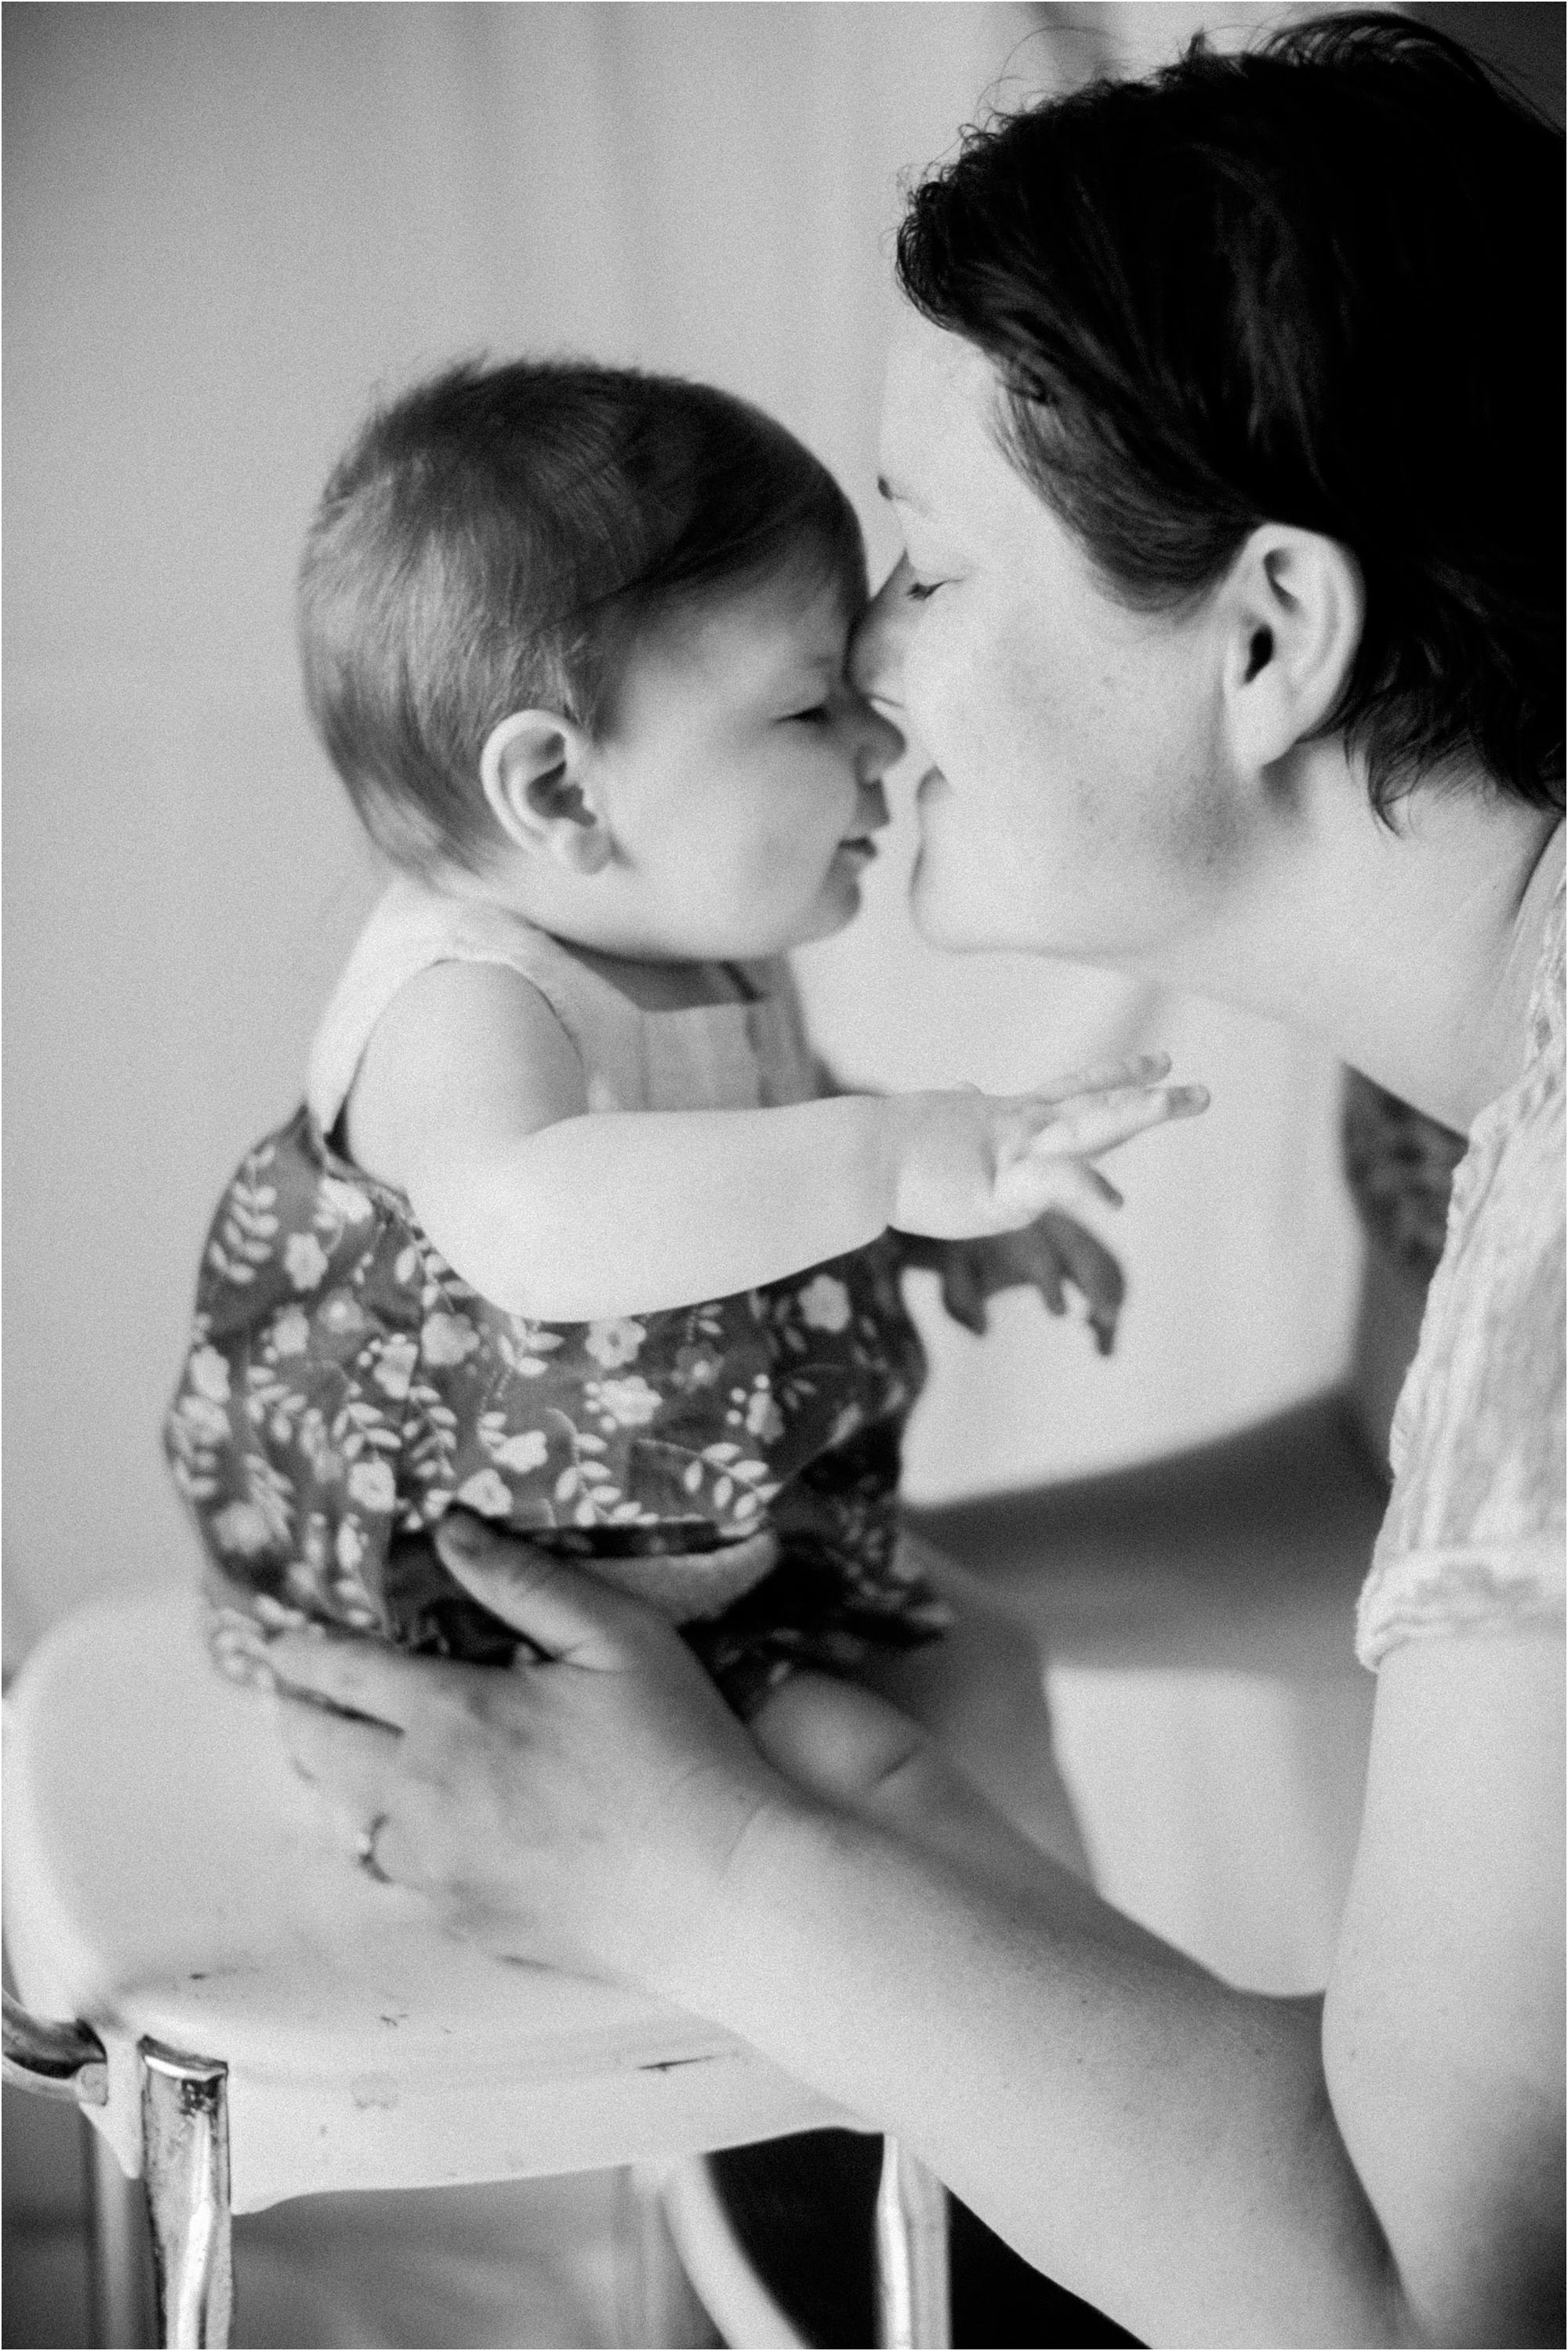 Little Rock AR Family Photography by Jordan Brittley